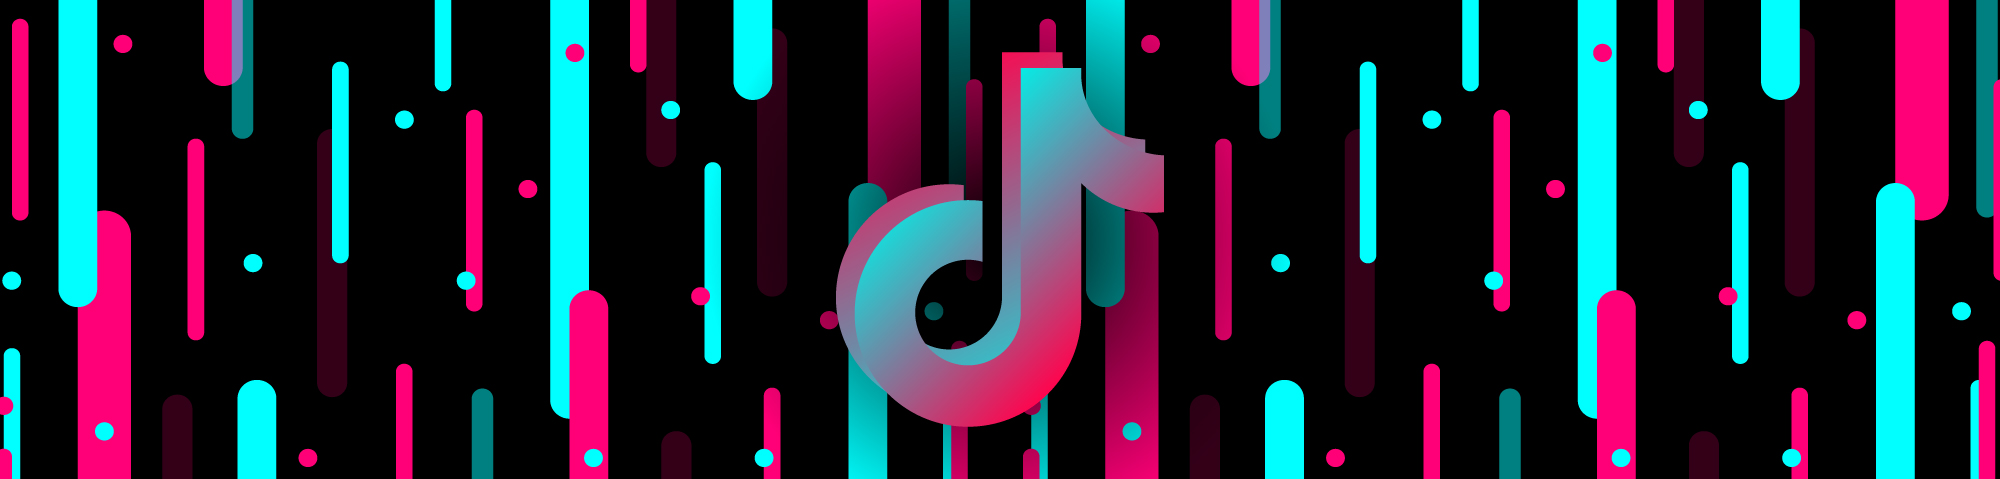 How Your Brand Can Go Viral On TikTok